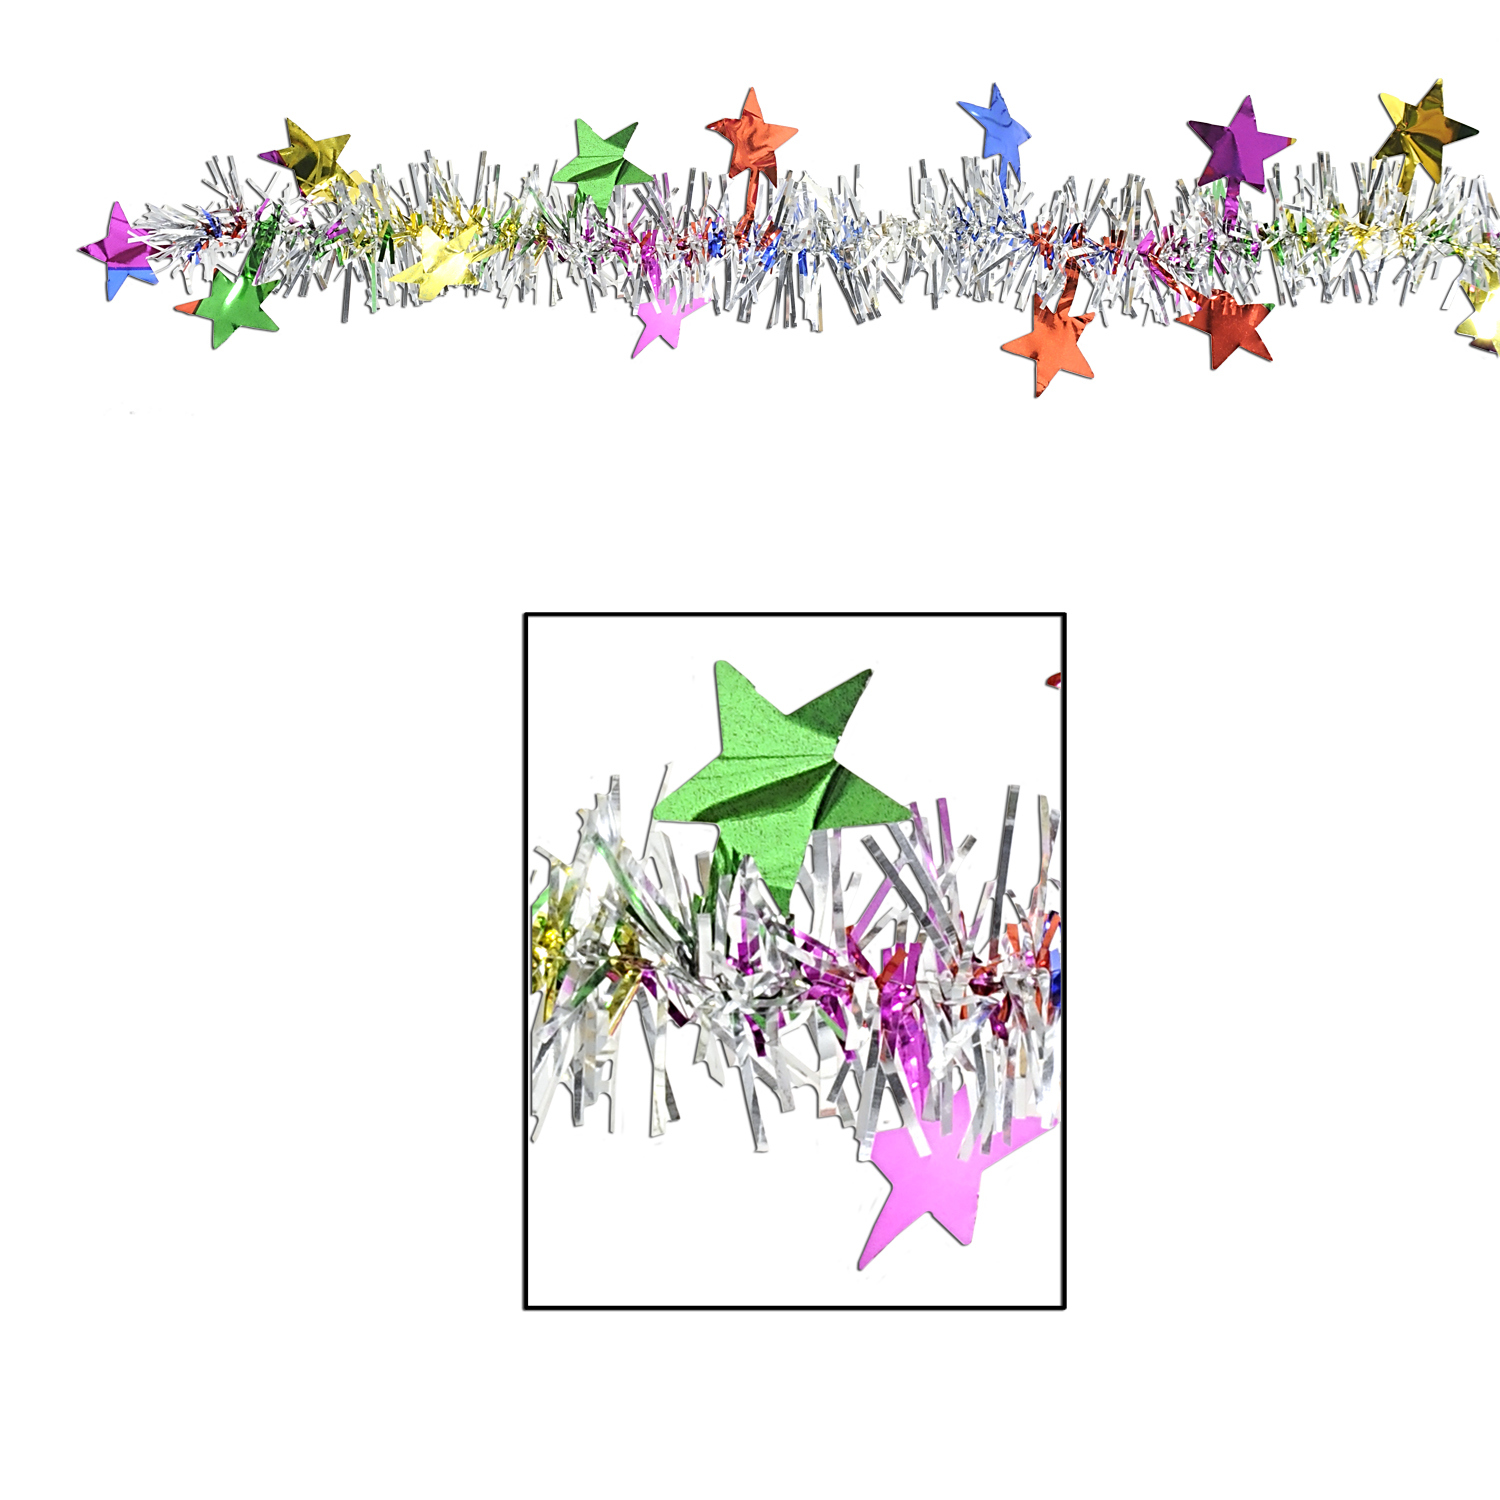 Multi-Color Metallic Star Garland (Pack of 12) Galrand, Metallic Garland, Star garland, Multi-color, Birthday, cheap, Hanging Decor, Wholesale party supplies, Party goods, New Years Eve, Decorations, Inexpensive, Budget